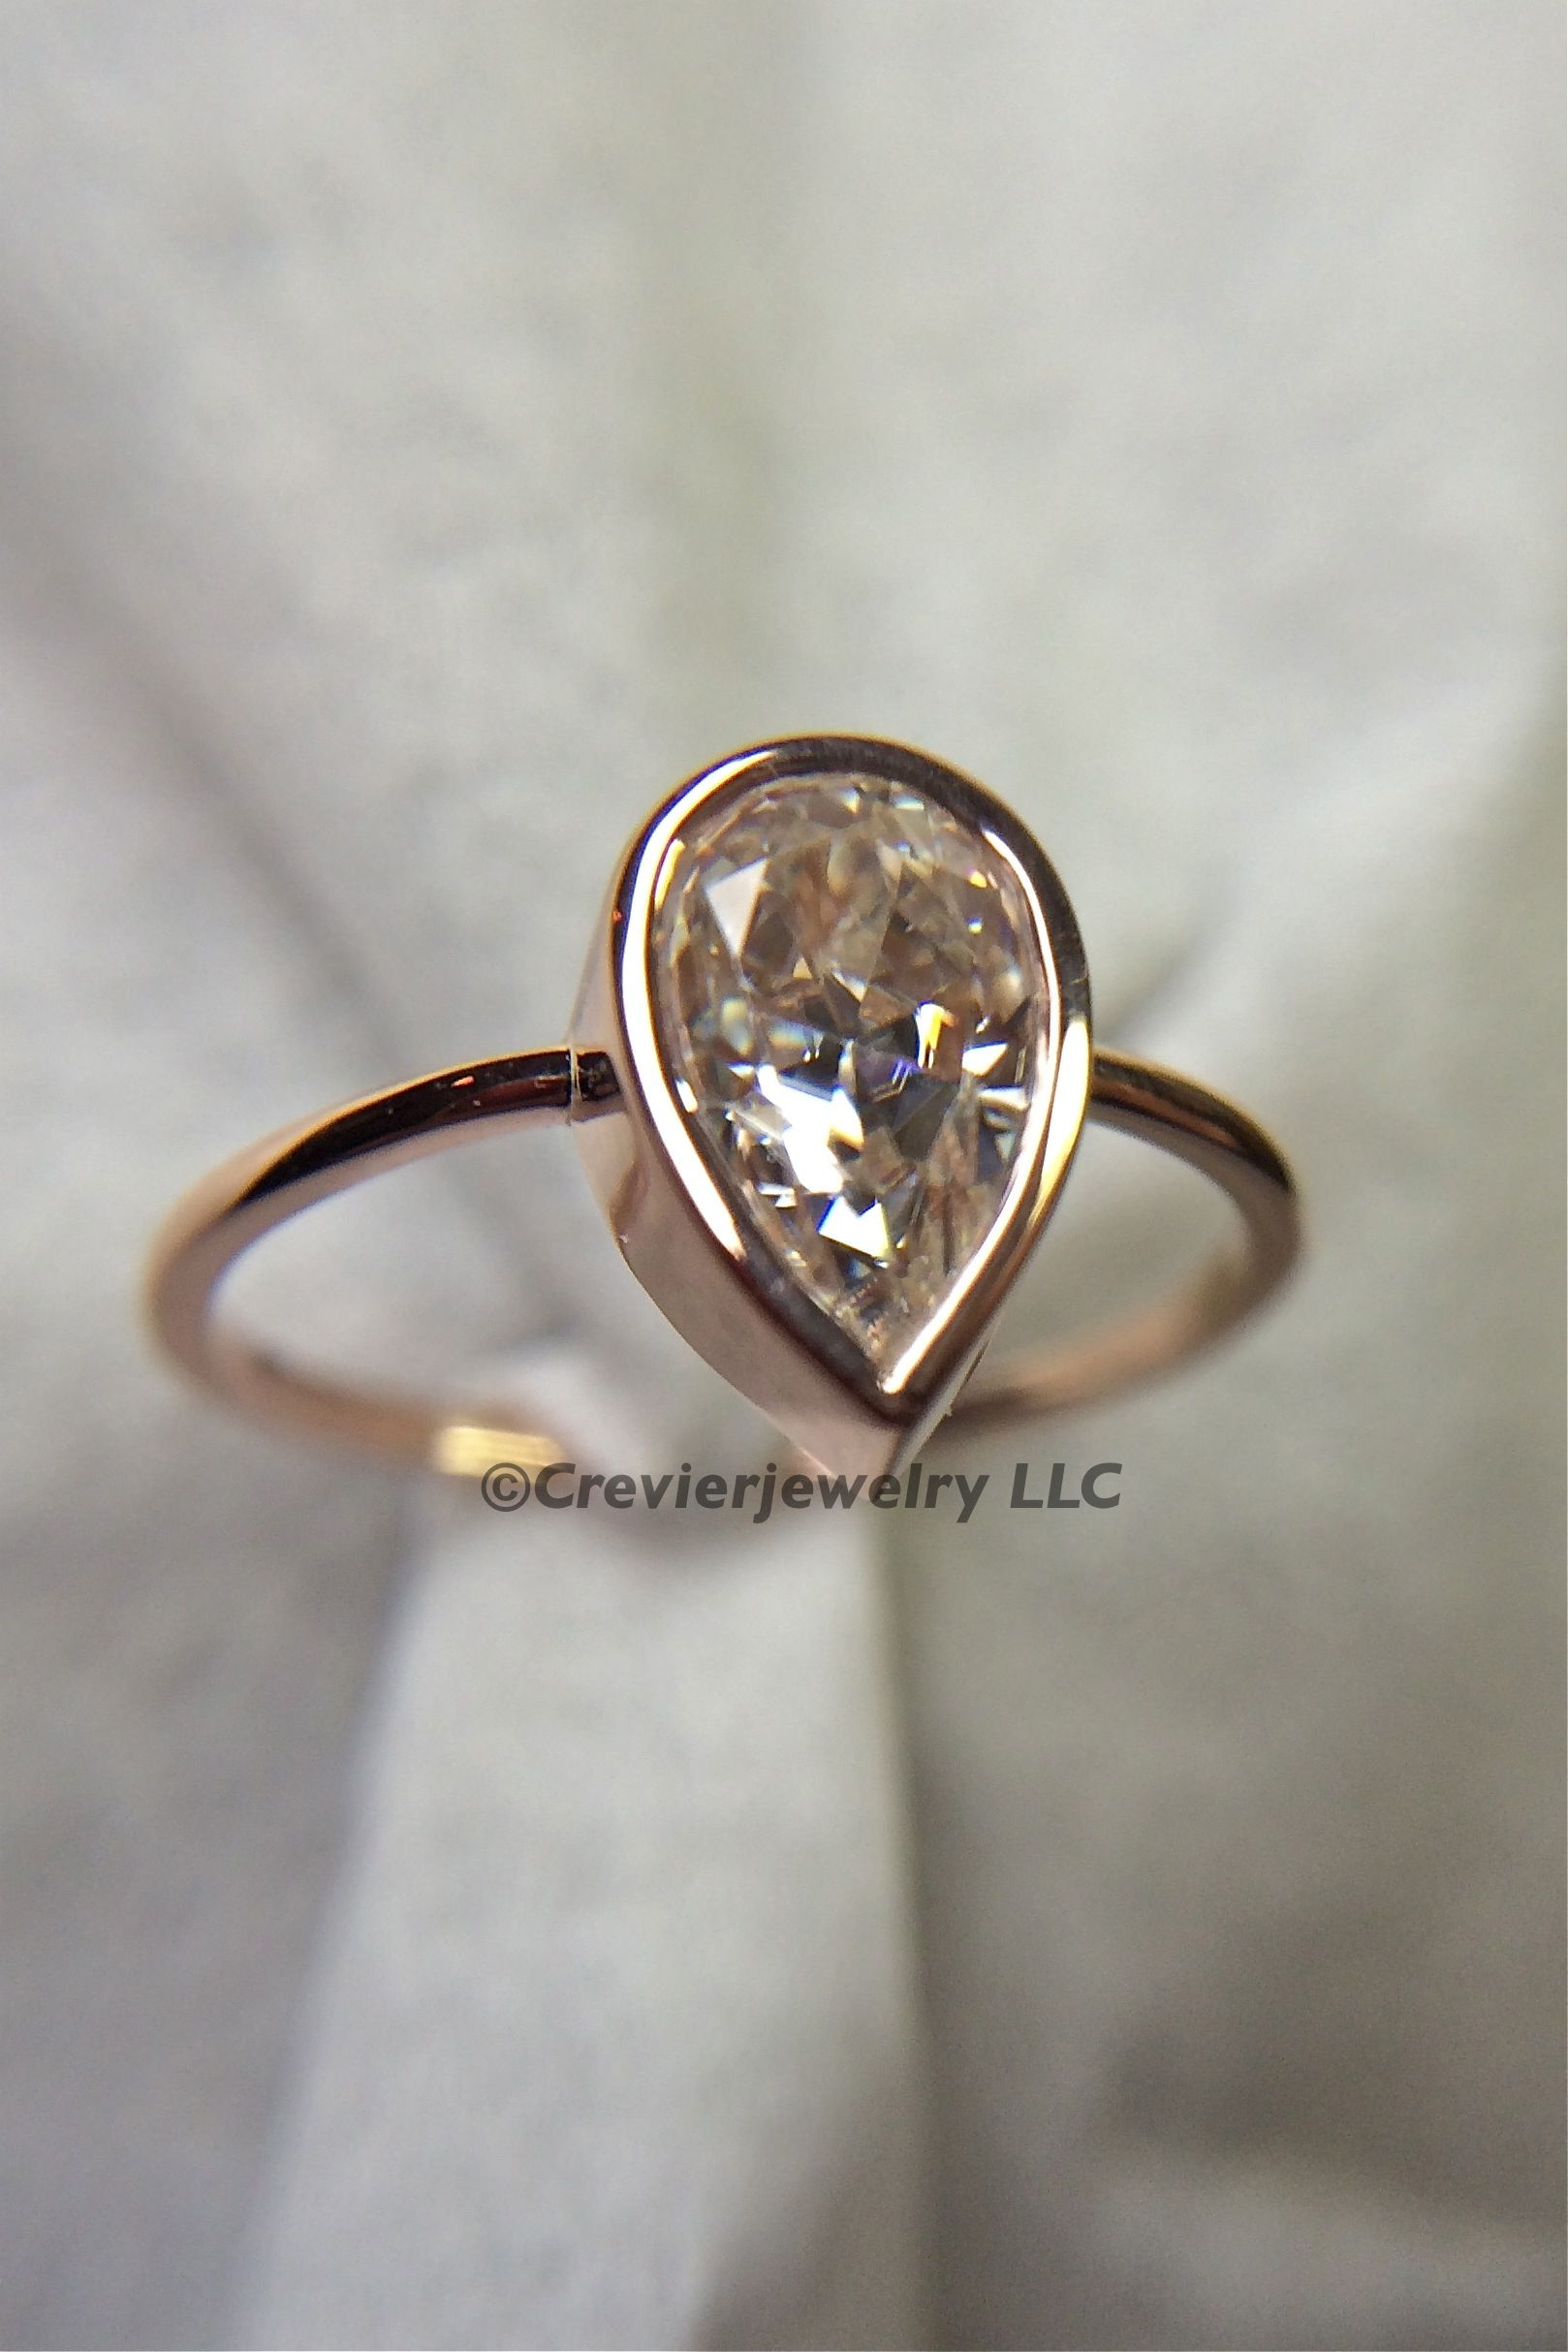 best of pear shaped engagement gold pinterest halo unique on with yellow diamond ring dream rings related post images